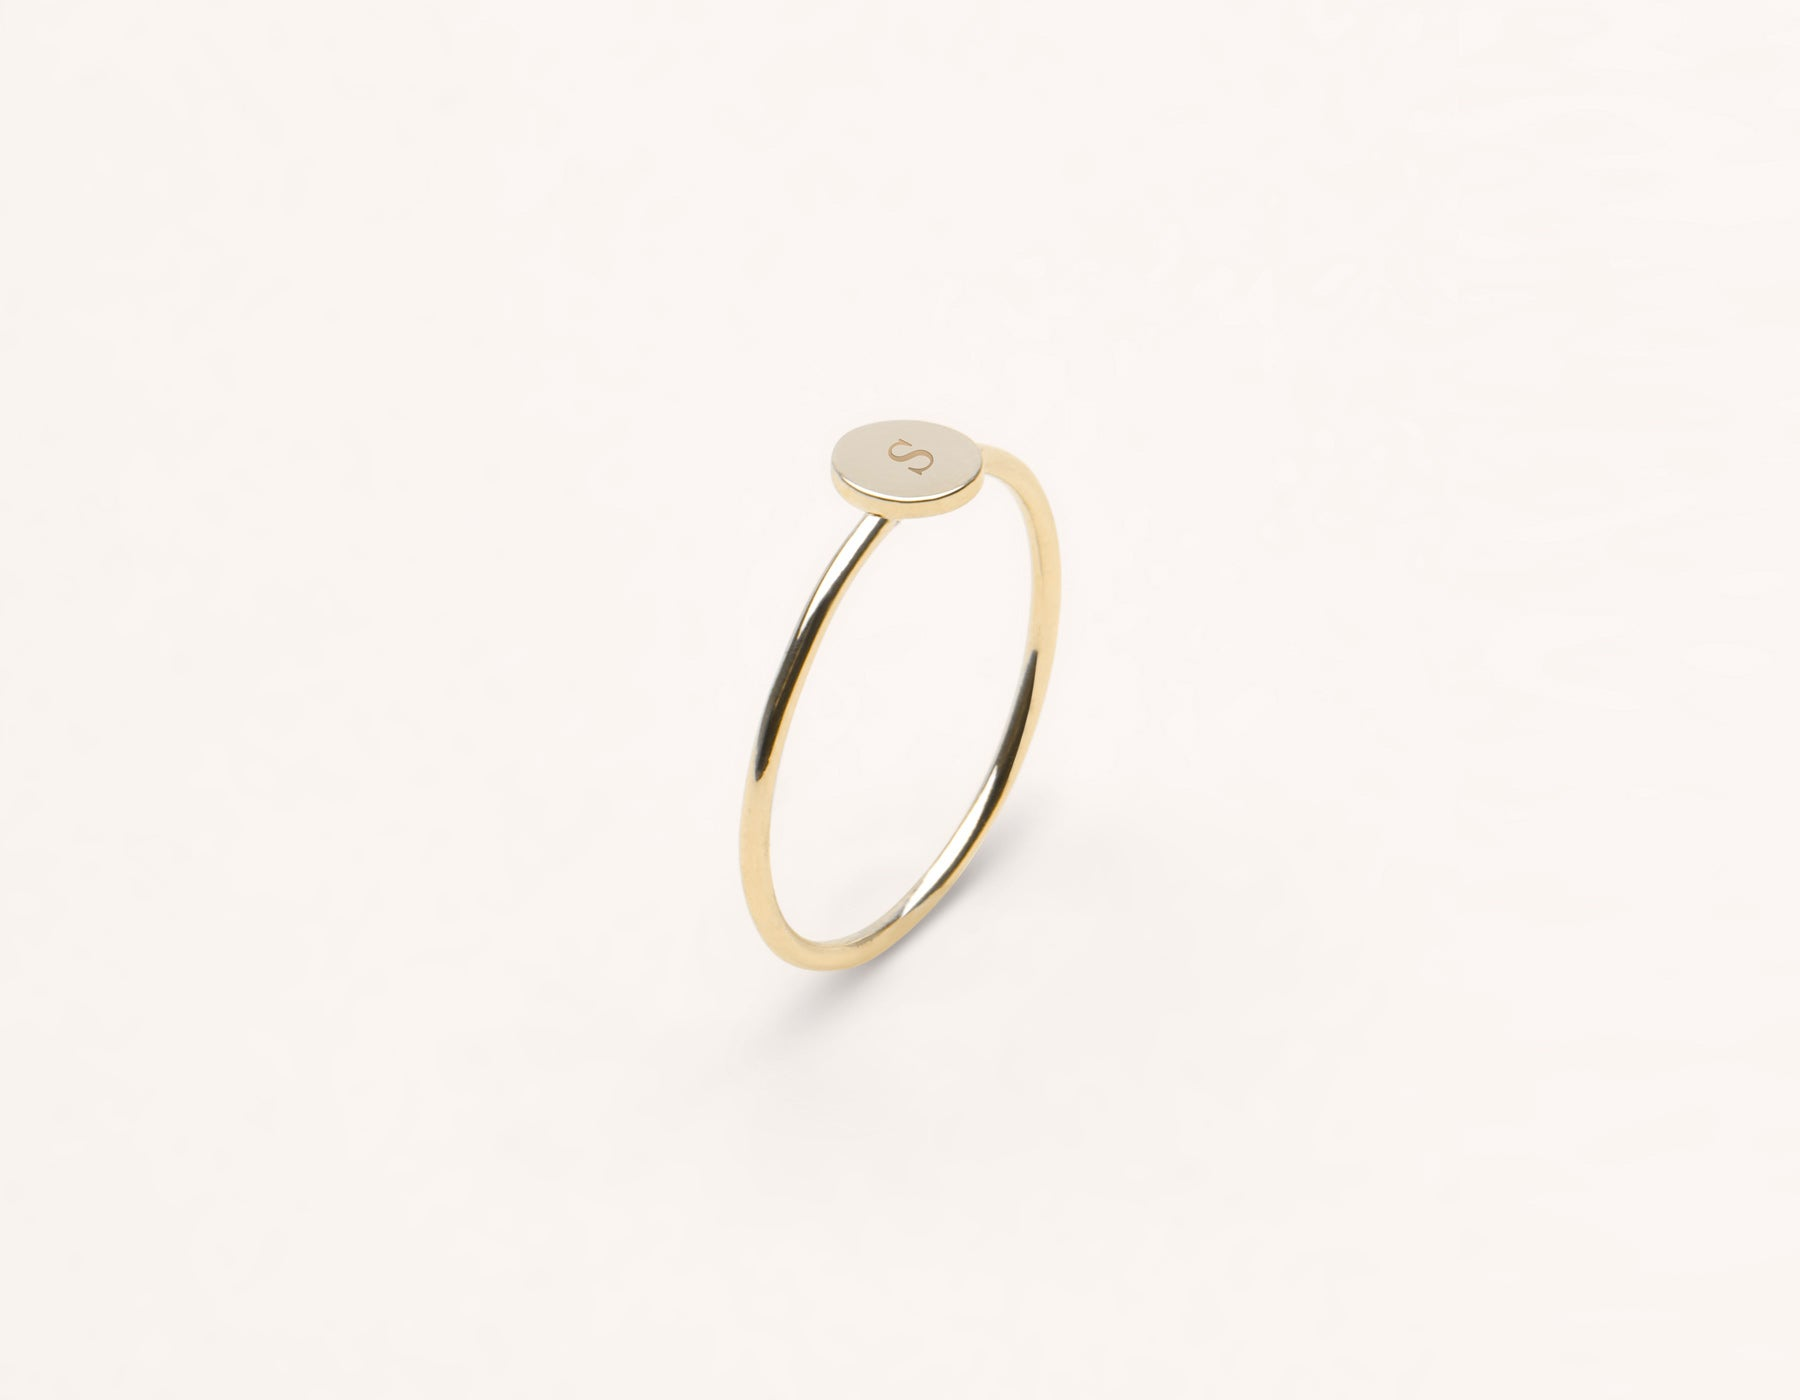 Customizable Initial Ring 14k solid gold minimalist round disk Vrai and Oro, 14K Yellow Gold